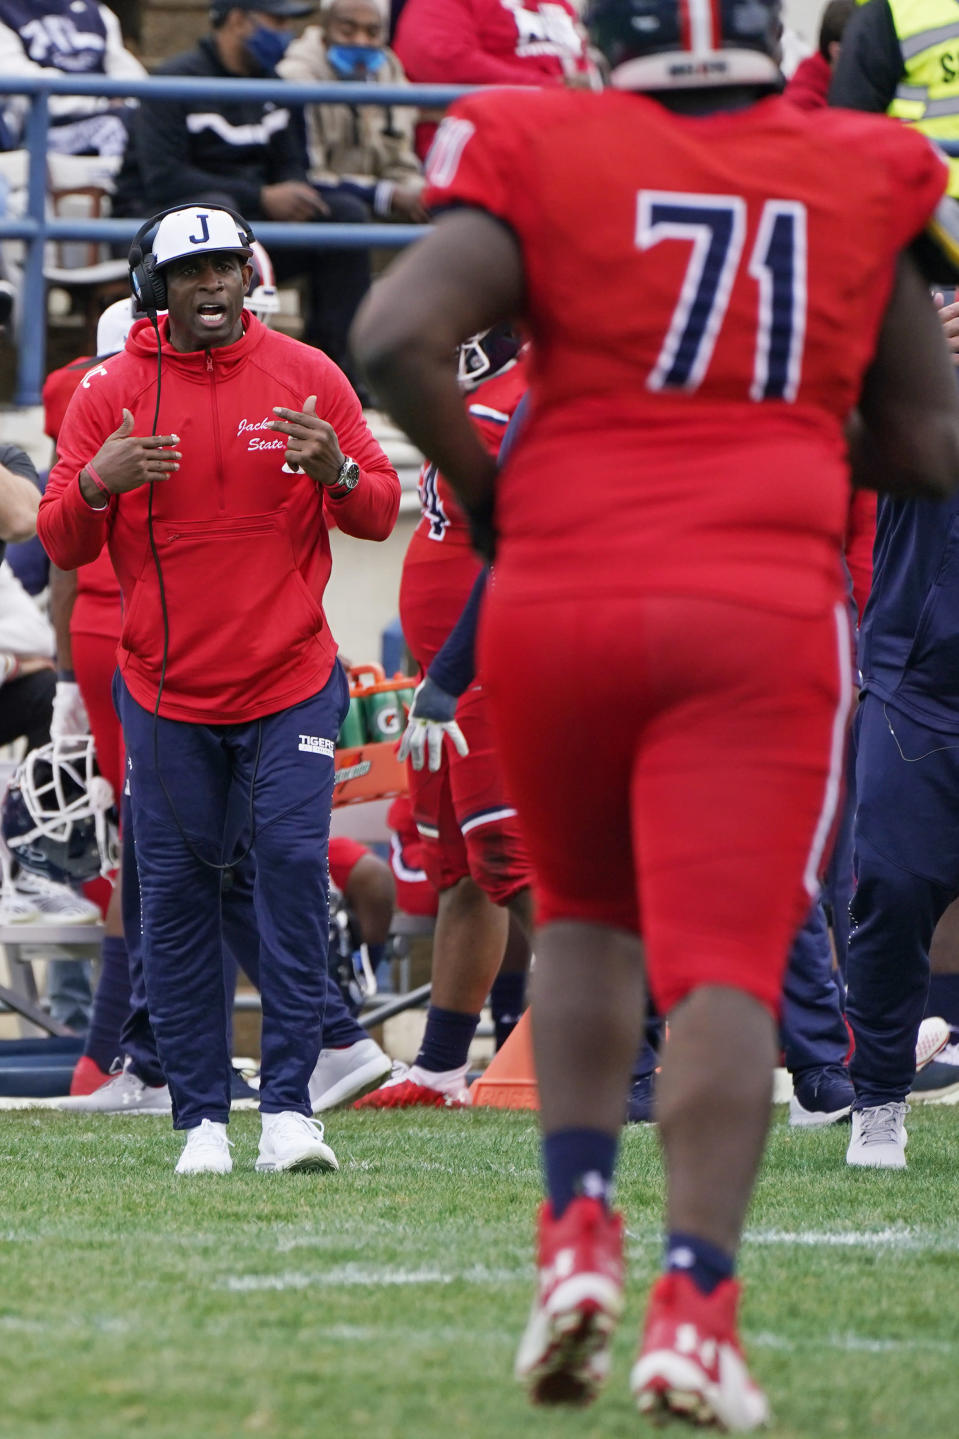 Jackson State head coach Deion Sanders calls out to his offense during the second half of an NCAA college football game against Edward Waters in Jackson, Miss., Sunday, Feb. 21, 2021. The game marked the coaching debut of Sanders. (AP Photo/Rogelio V. Solis)